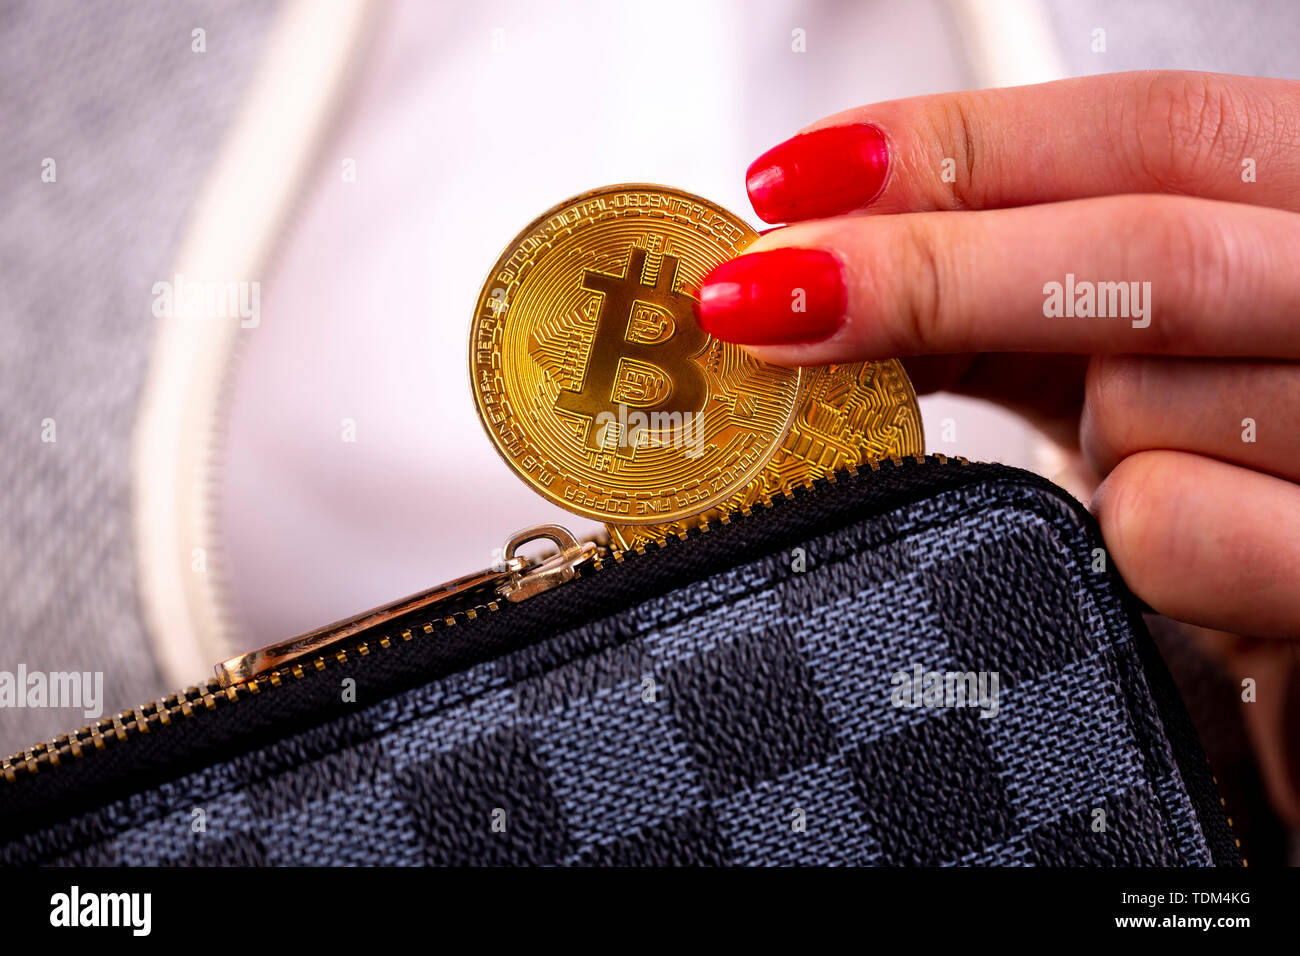 Virtual cryptocurrency money Bitcoin golden coins in the left hand of a woman with red nail polish and a purse. The future of money. Stock Photo